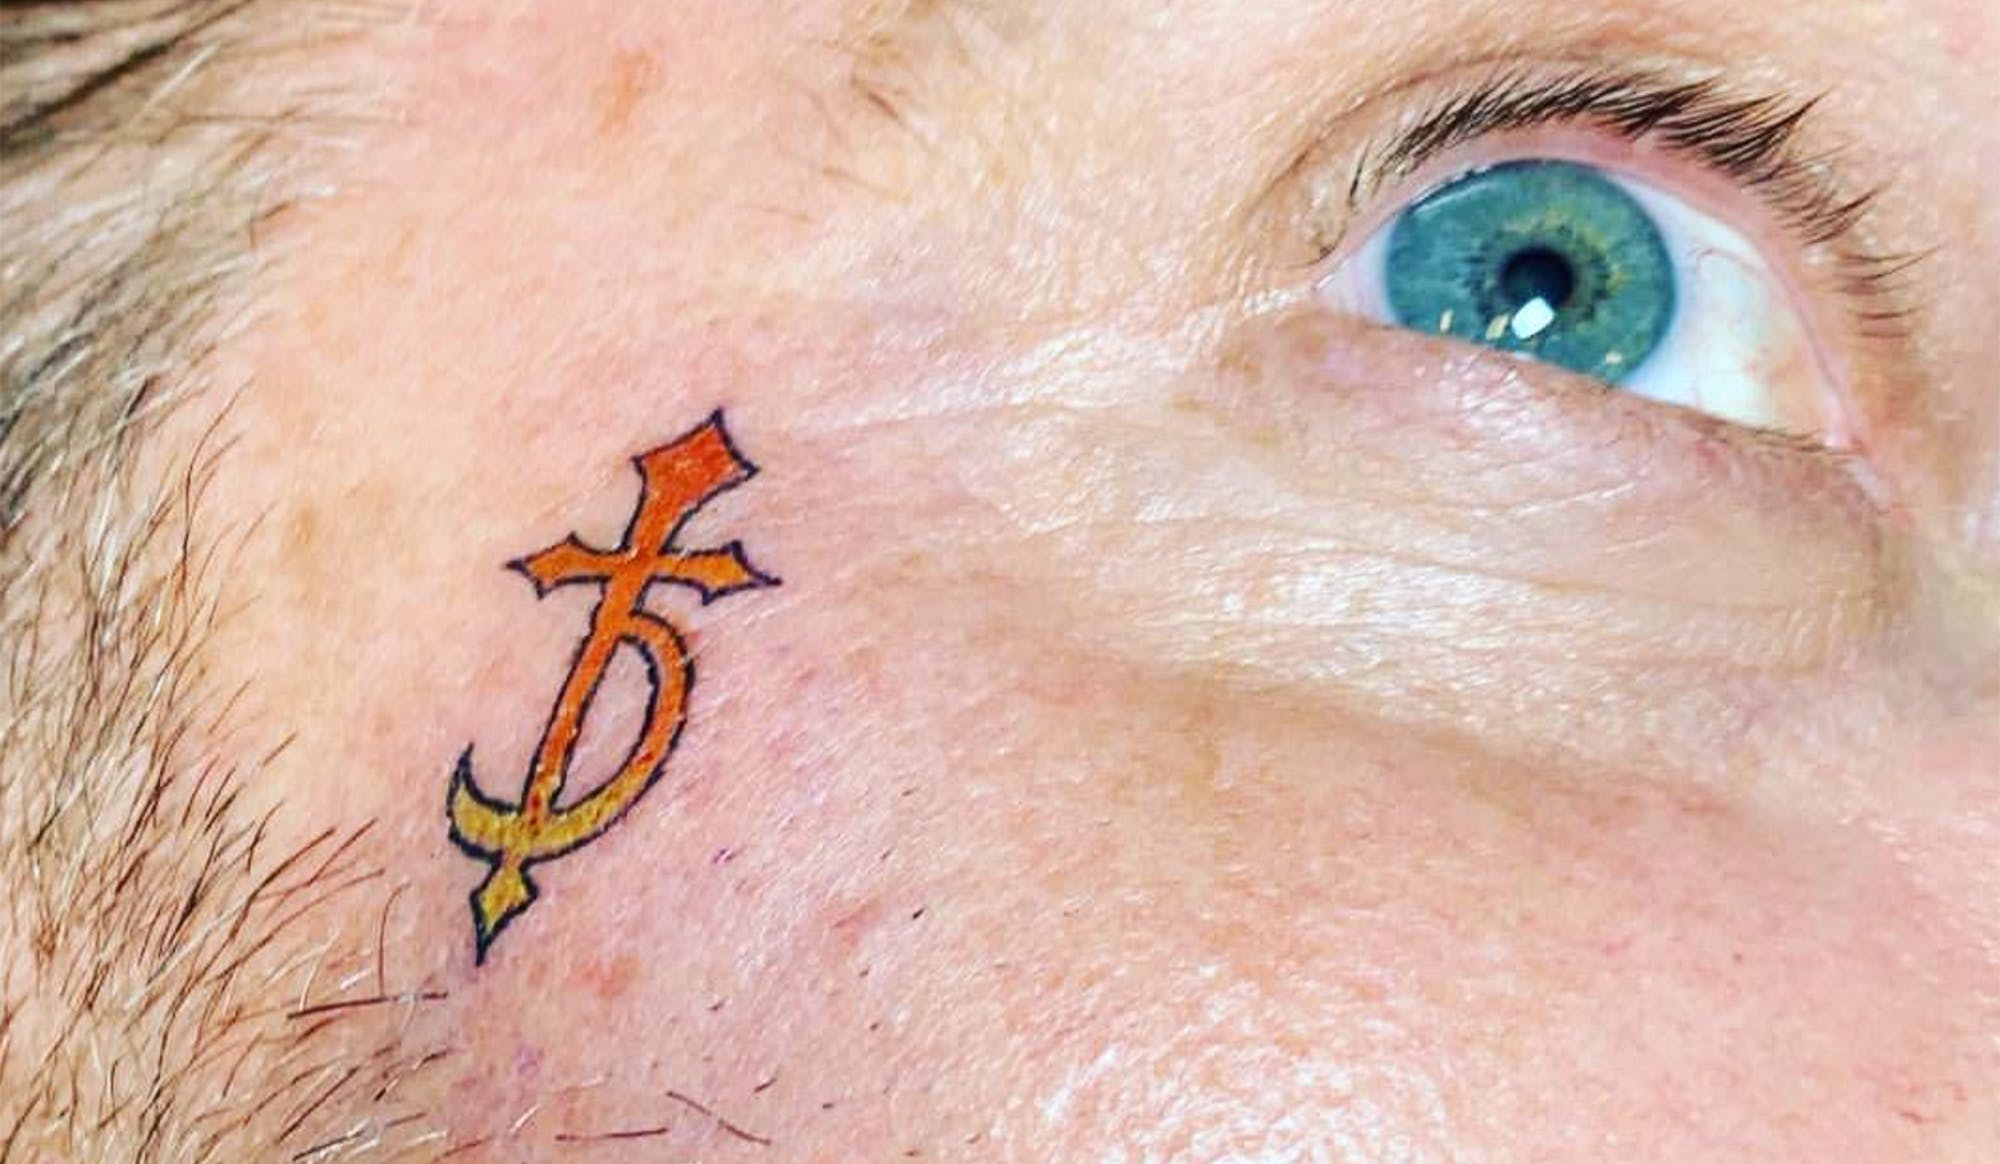 DevilDriver's Dez Fafara Adds More Tattoos To His Chin, Throat and Face